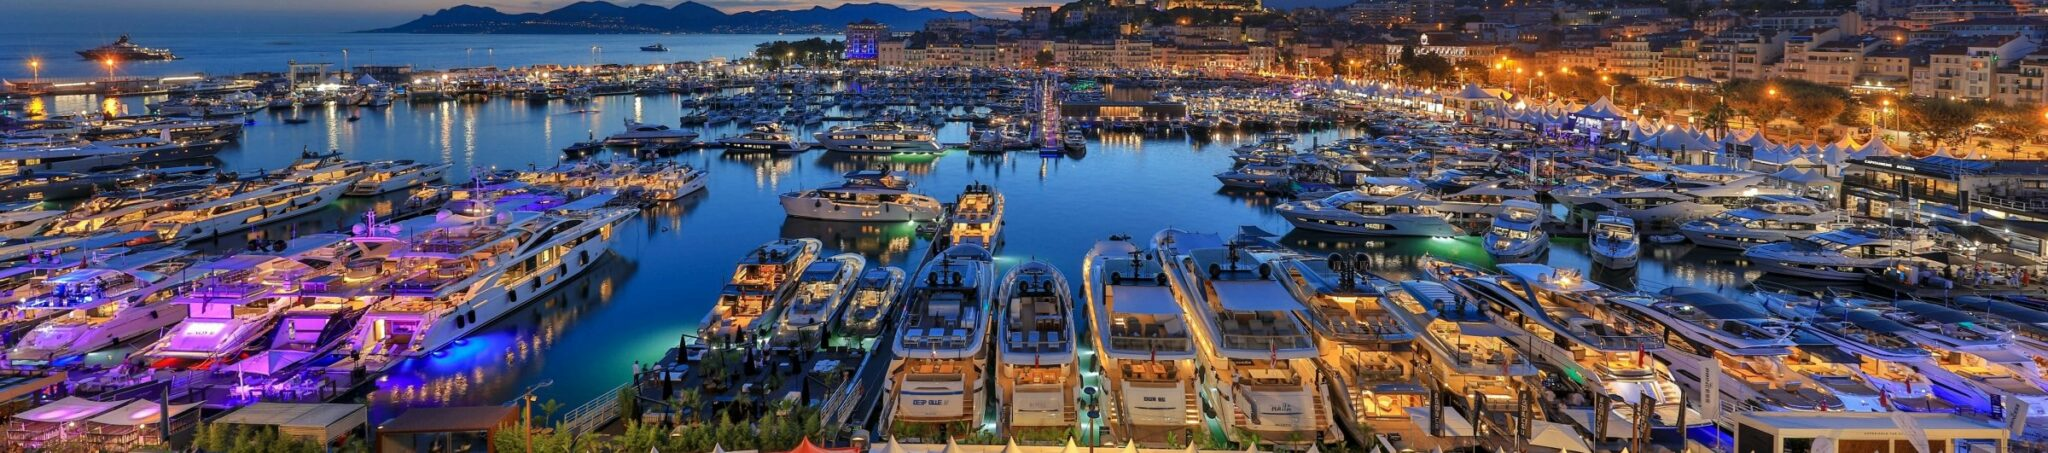 Cannes yachts